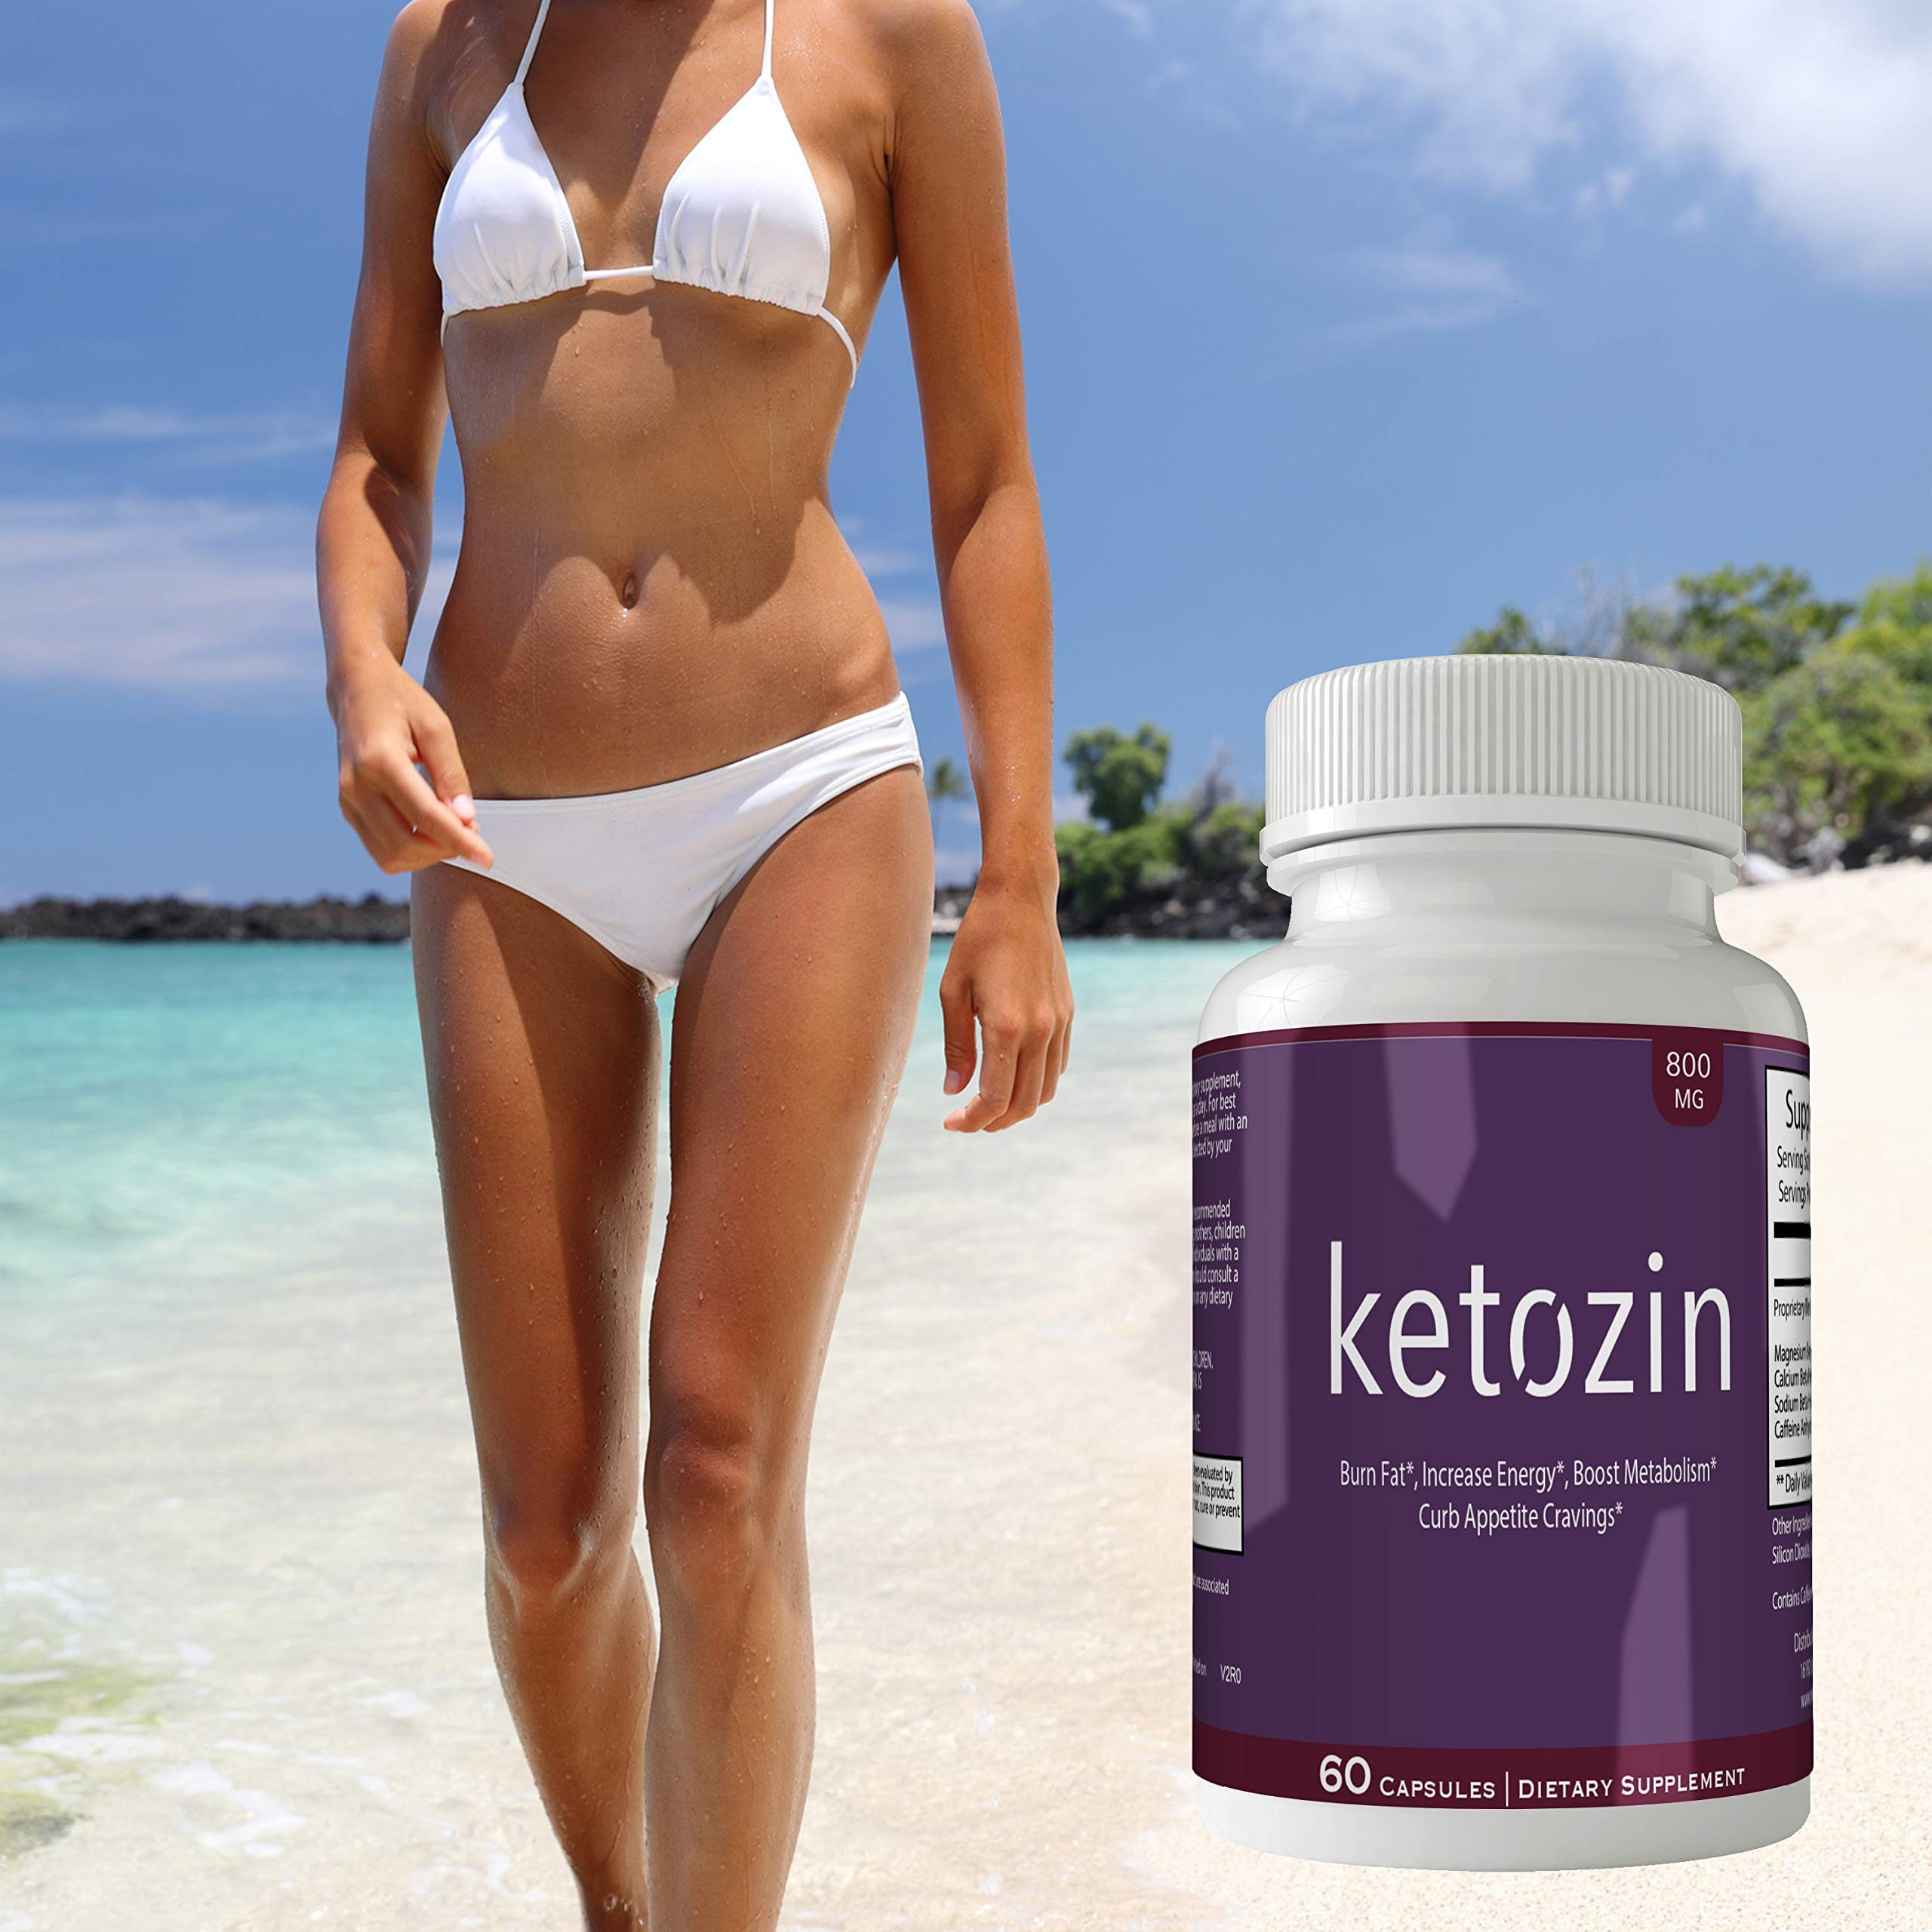 Ketozin Weight Loss Pills Advance Weight Loss Supplement Appetite Suppressant Natural Ketogenic 800 mg Formula with BHB Salts Ketone Diet Capsules to Boost Metabolism, Energy and Focus by nutra4health LLC (Image #5)